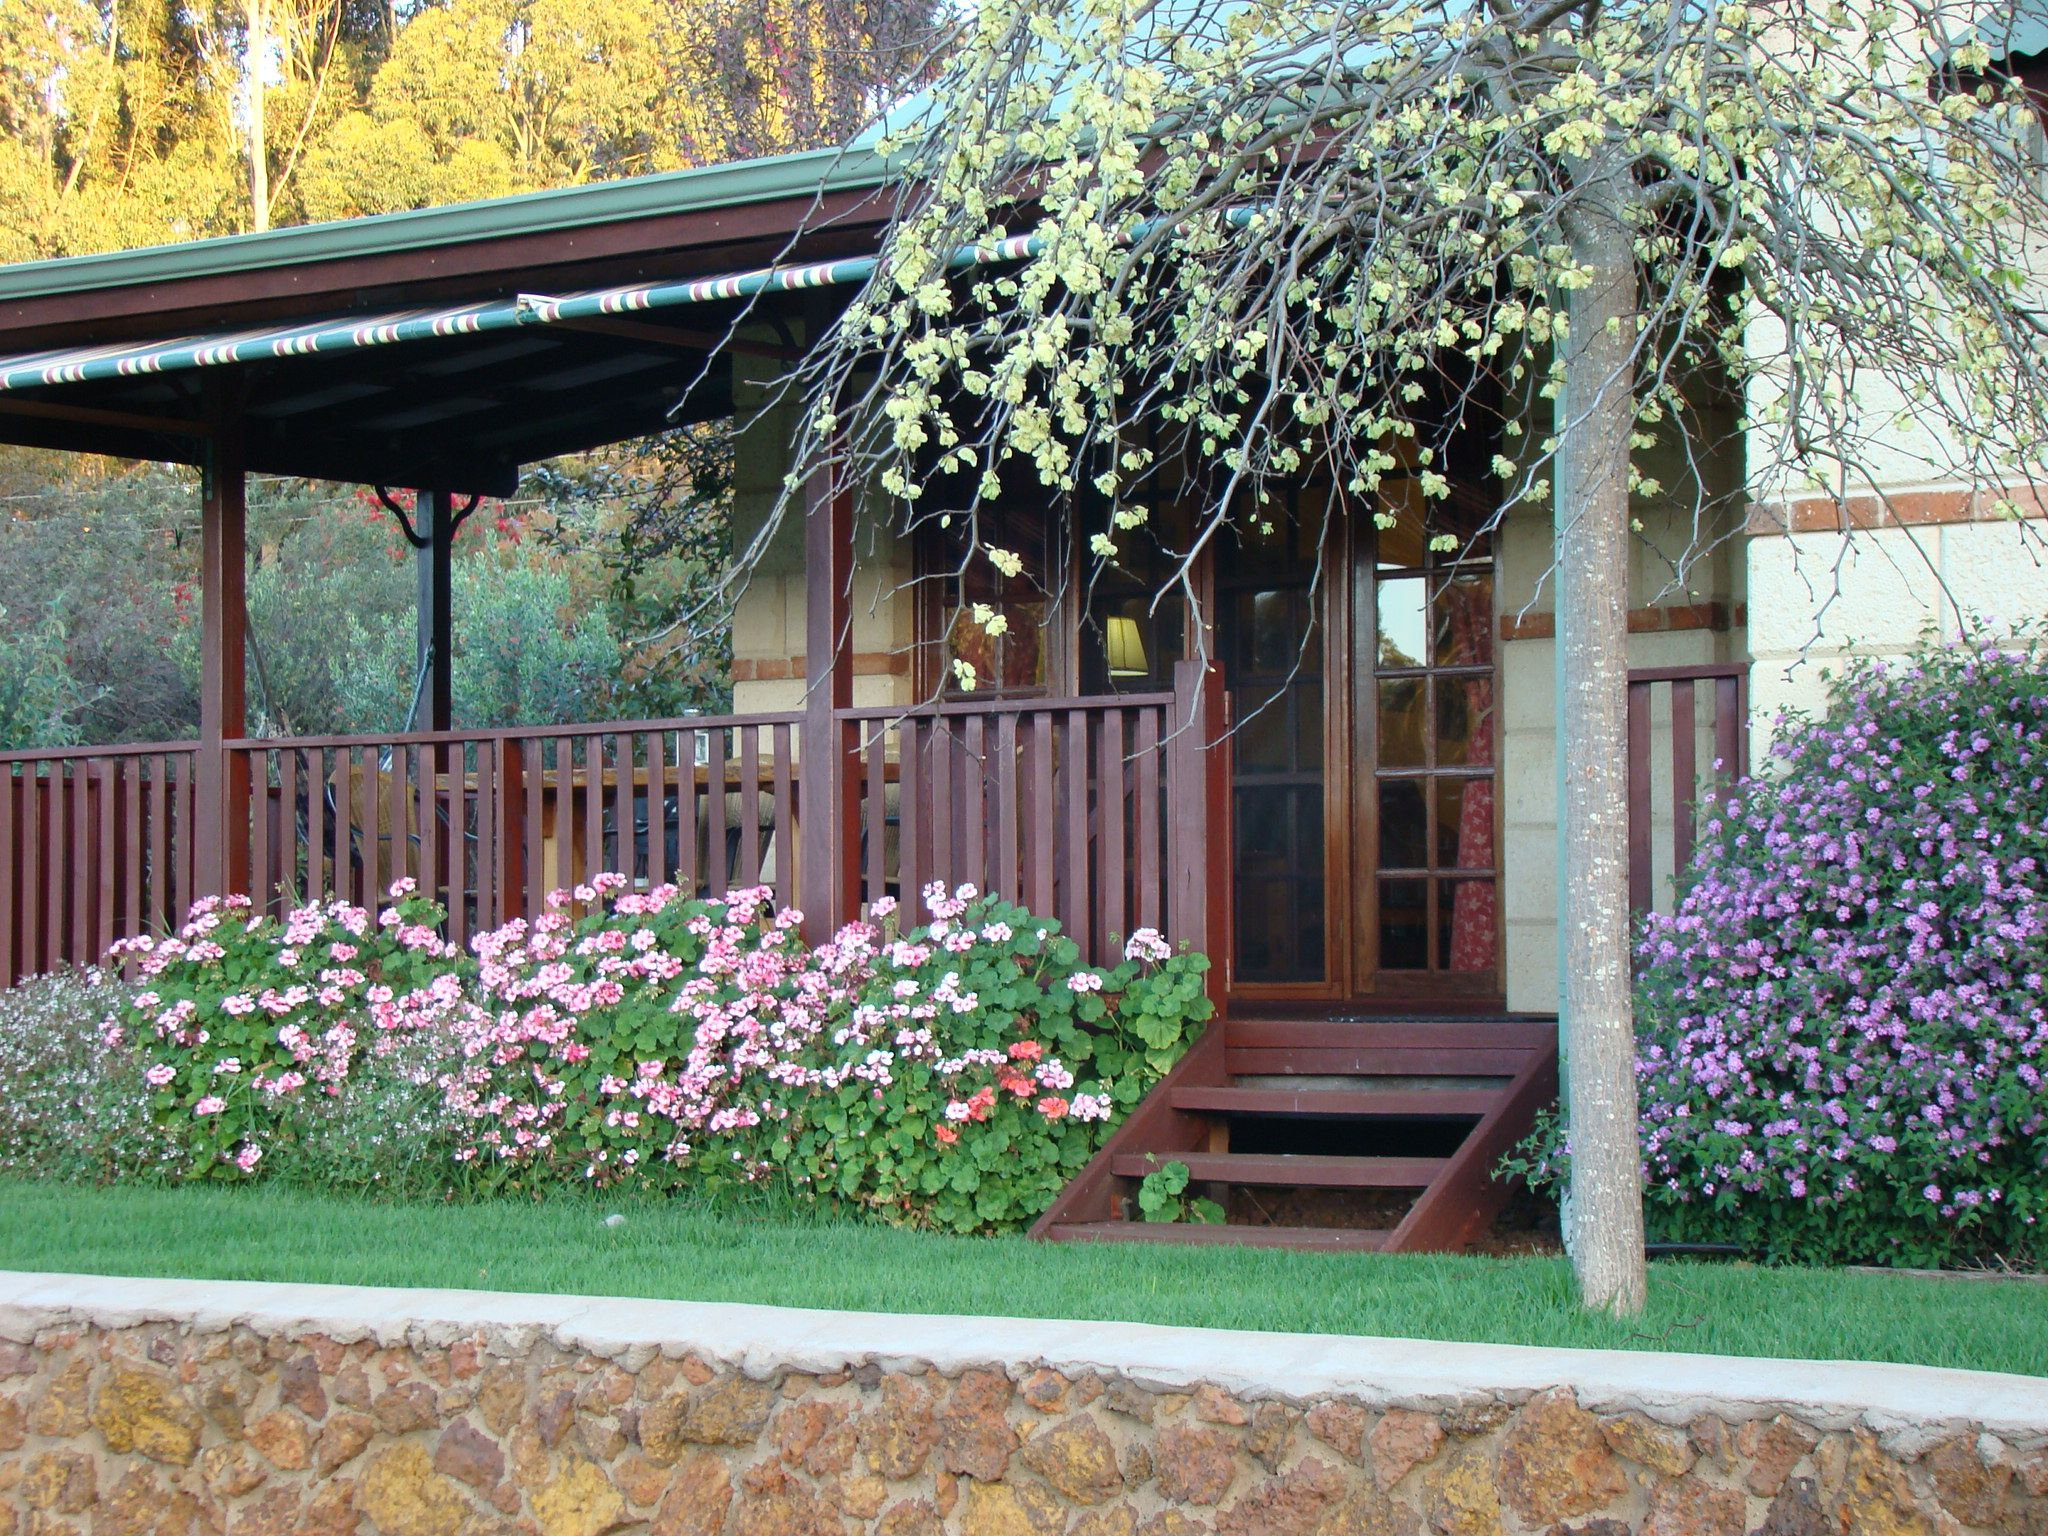 Cottage gardens australia front yard back yard for Front yard garden designs australia